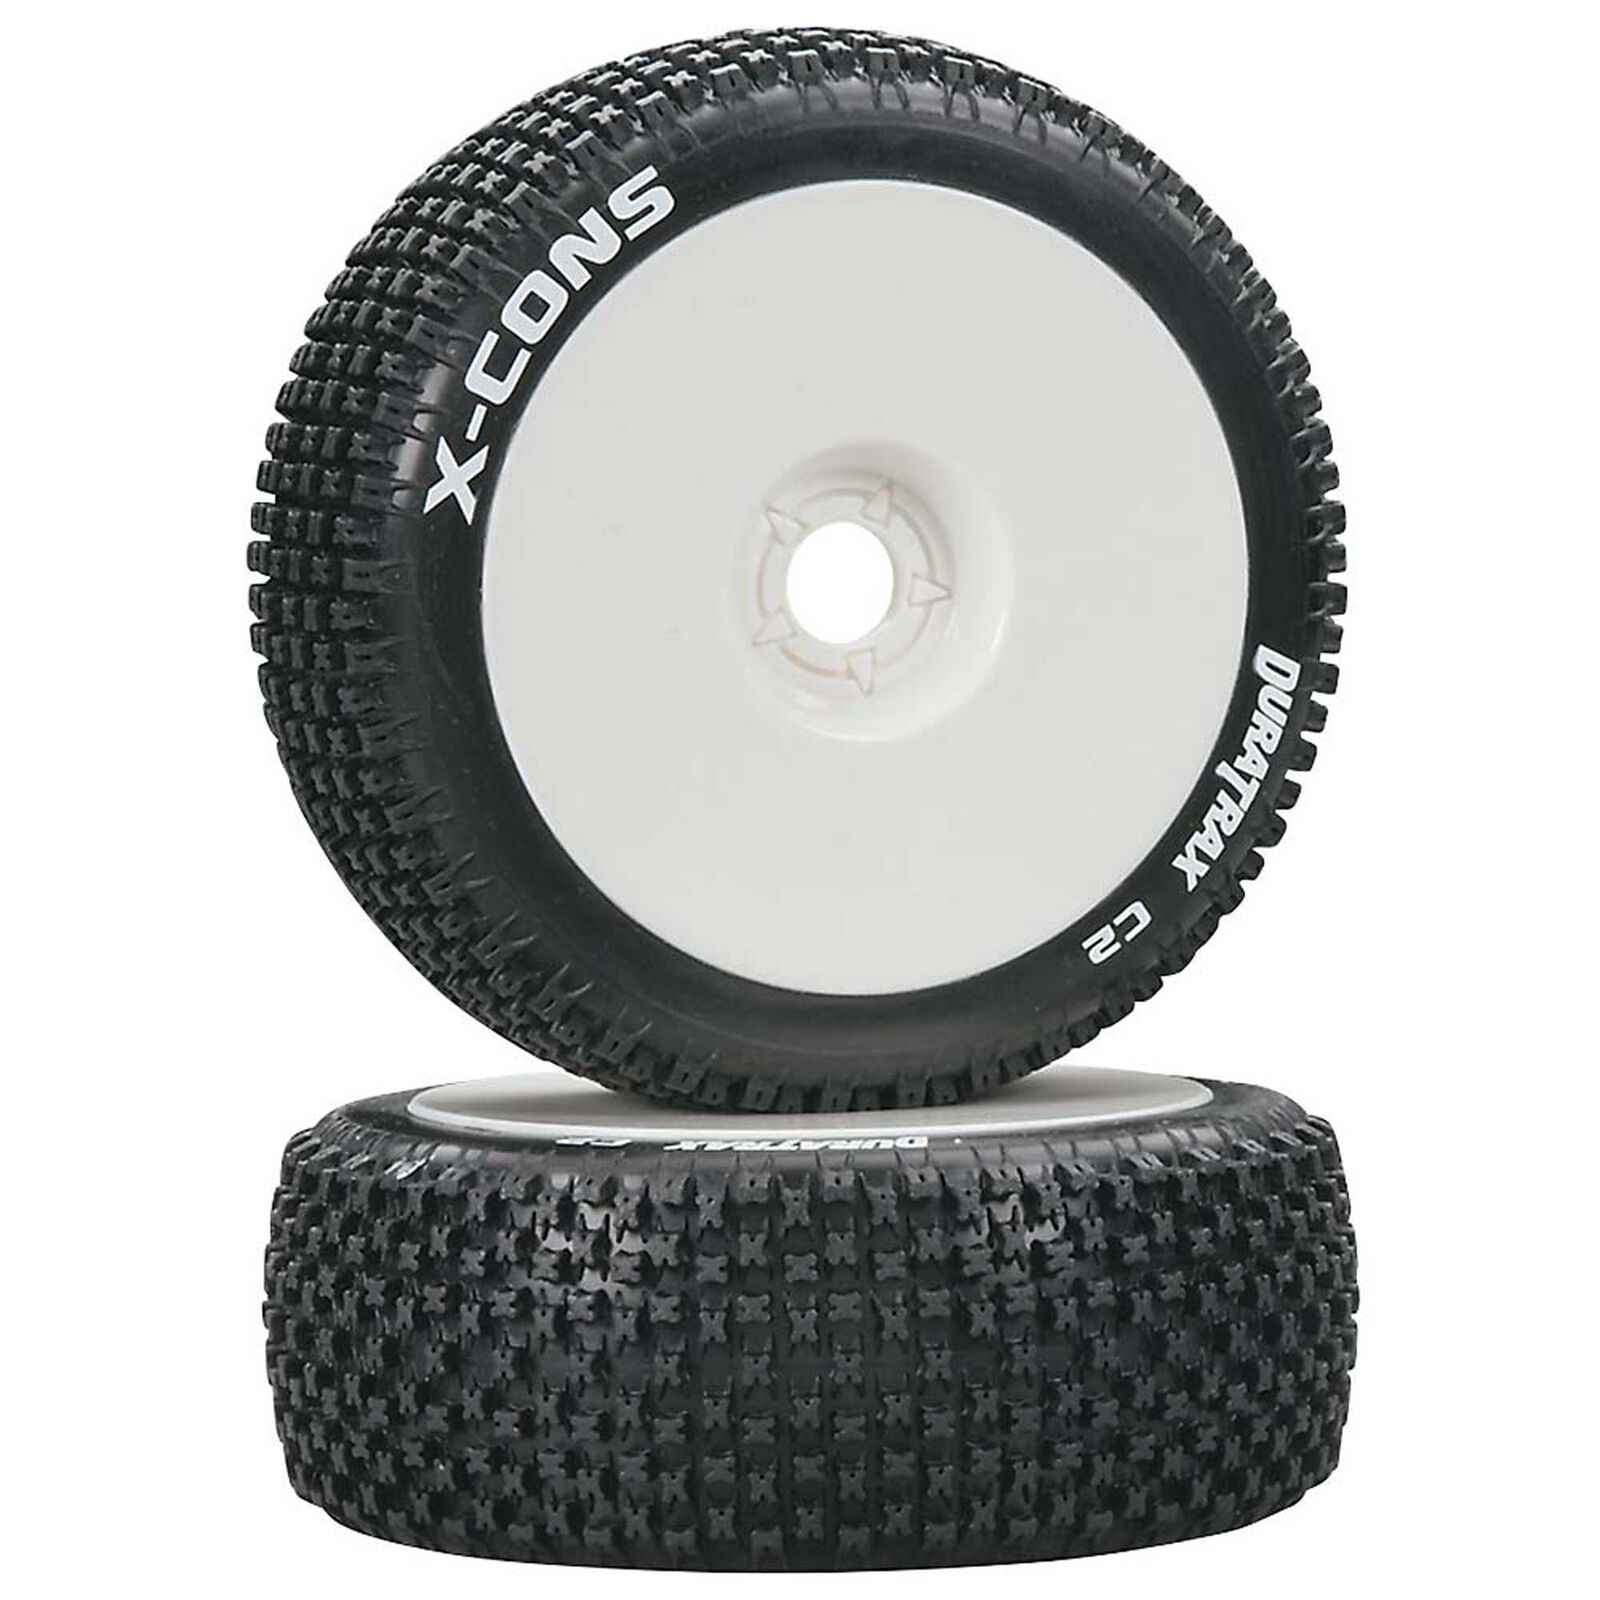 X-Cons 1/8 C2 Mounted Buggy Tires, White (2)